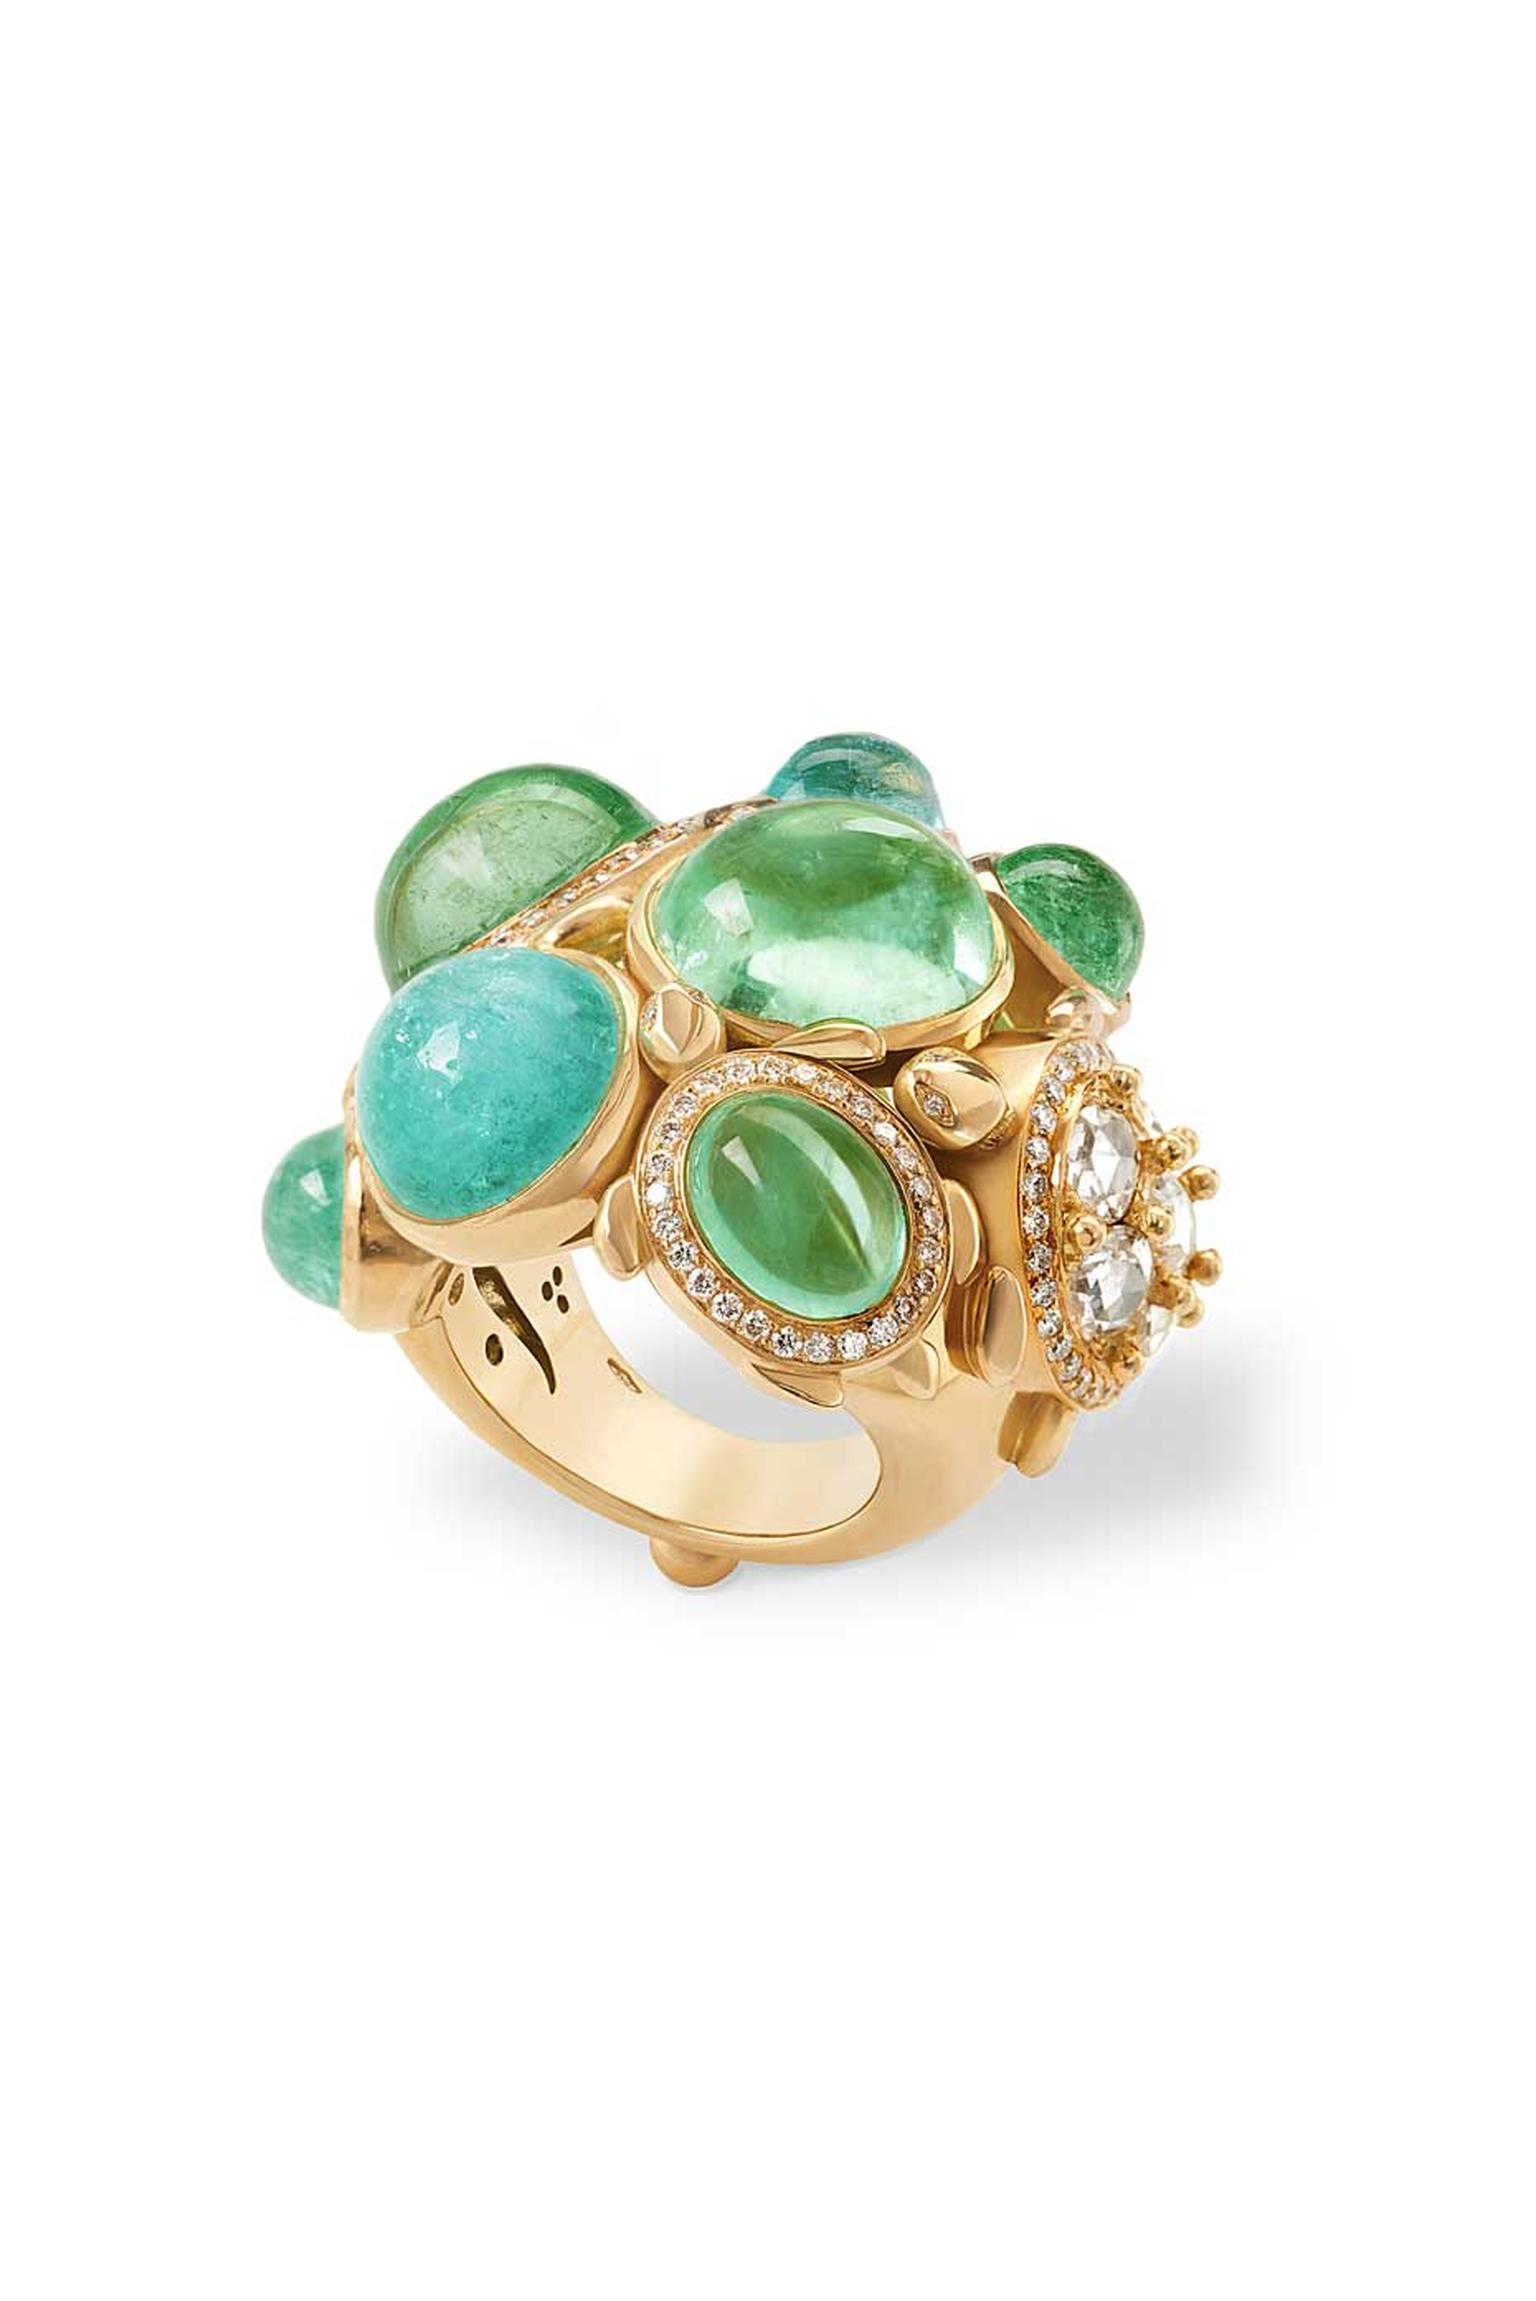 Temple St. Clair Turtles on the Rocks Ring set with Paraiba tourmalines and diamonds.